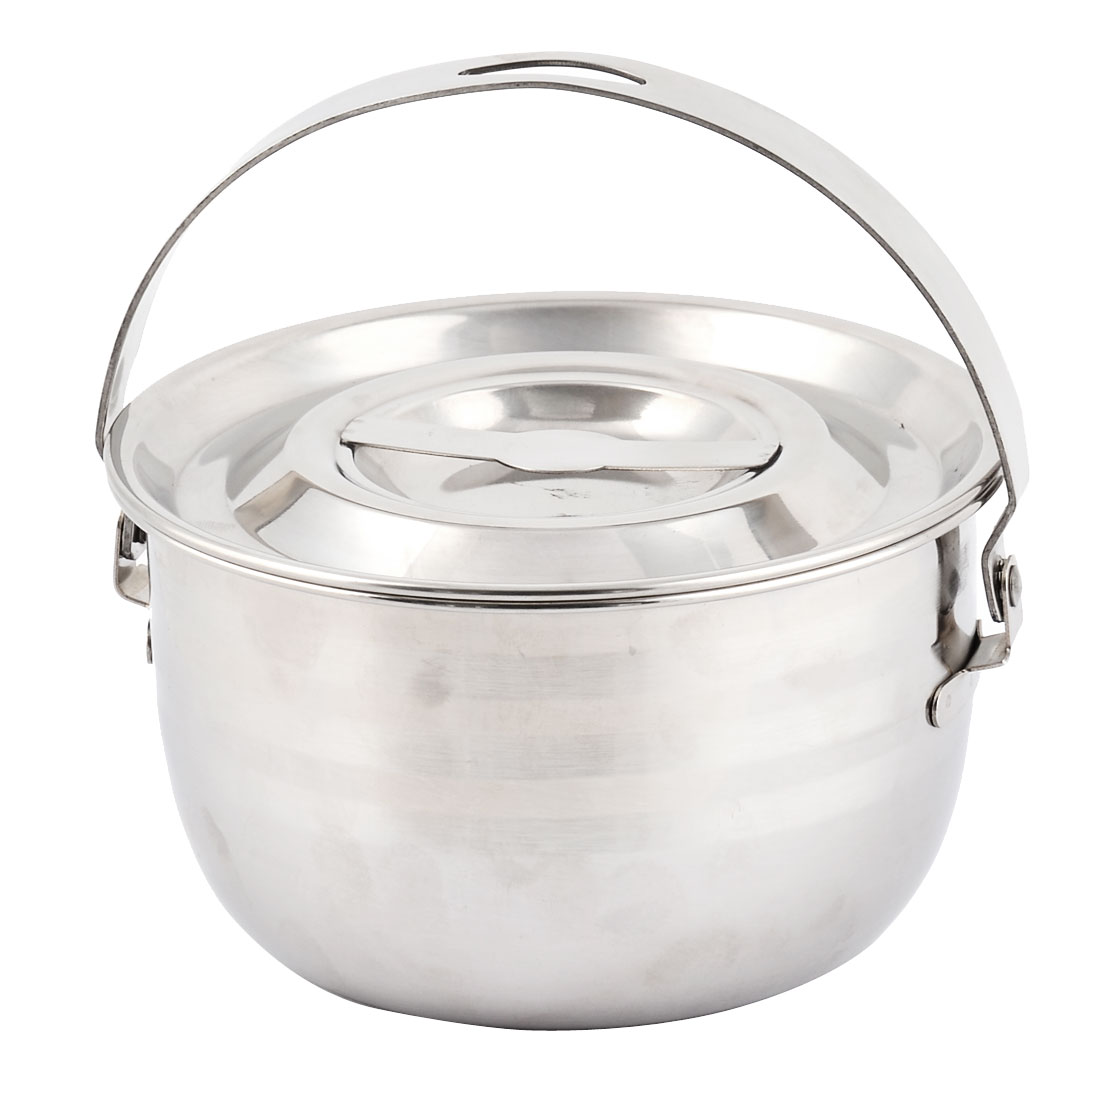 Restaurant Kitchen Stainless Steel Cooking Lidded Milk Soup Pot Pan 16.3cm Dia